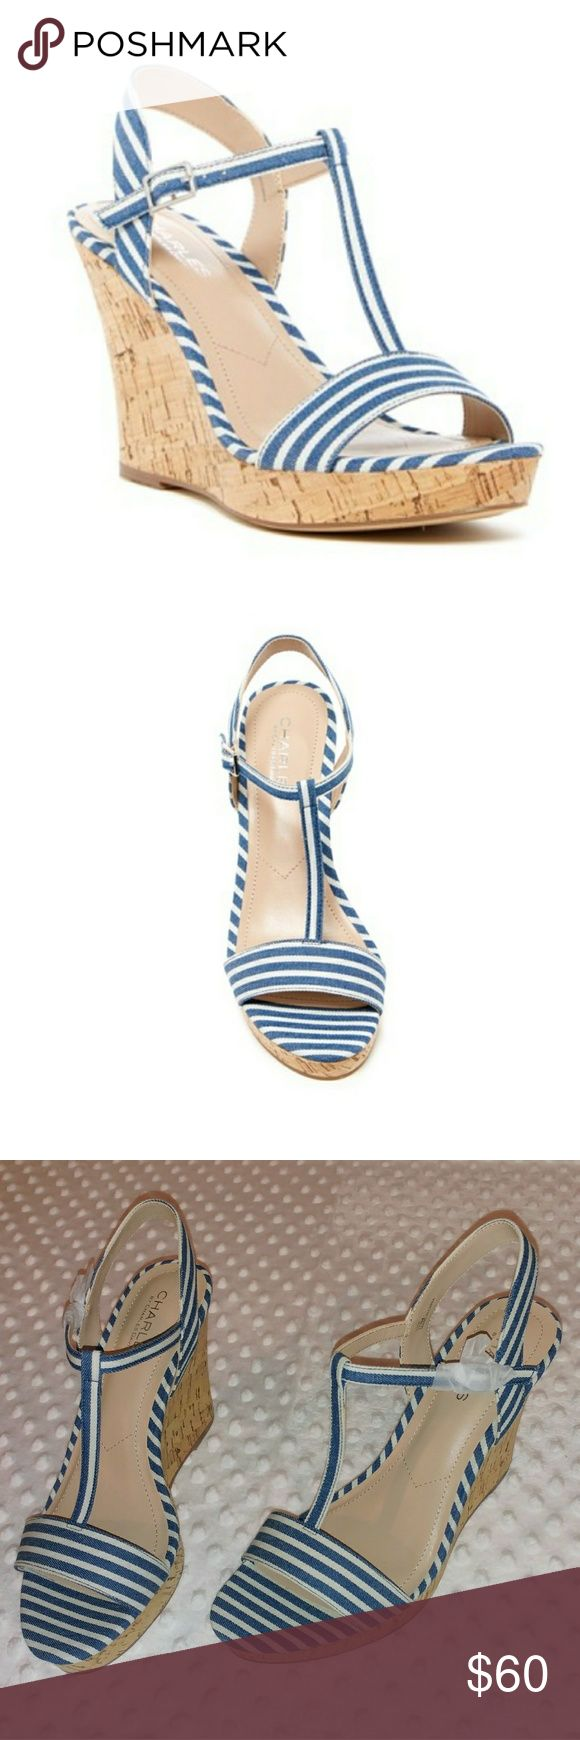 "Charles David NWT wedge sandals Charles by Charles David navy stripped wedge sandals.   New In Box  4"" rise from their highest, 1"" rise at their lowest Charles David Shoes Wedges"